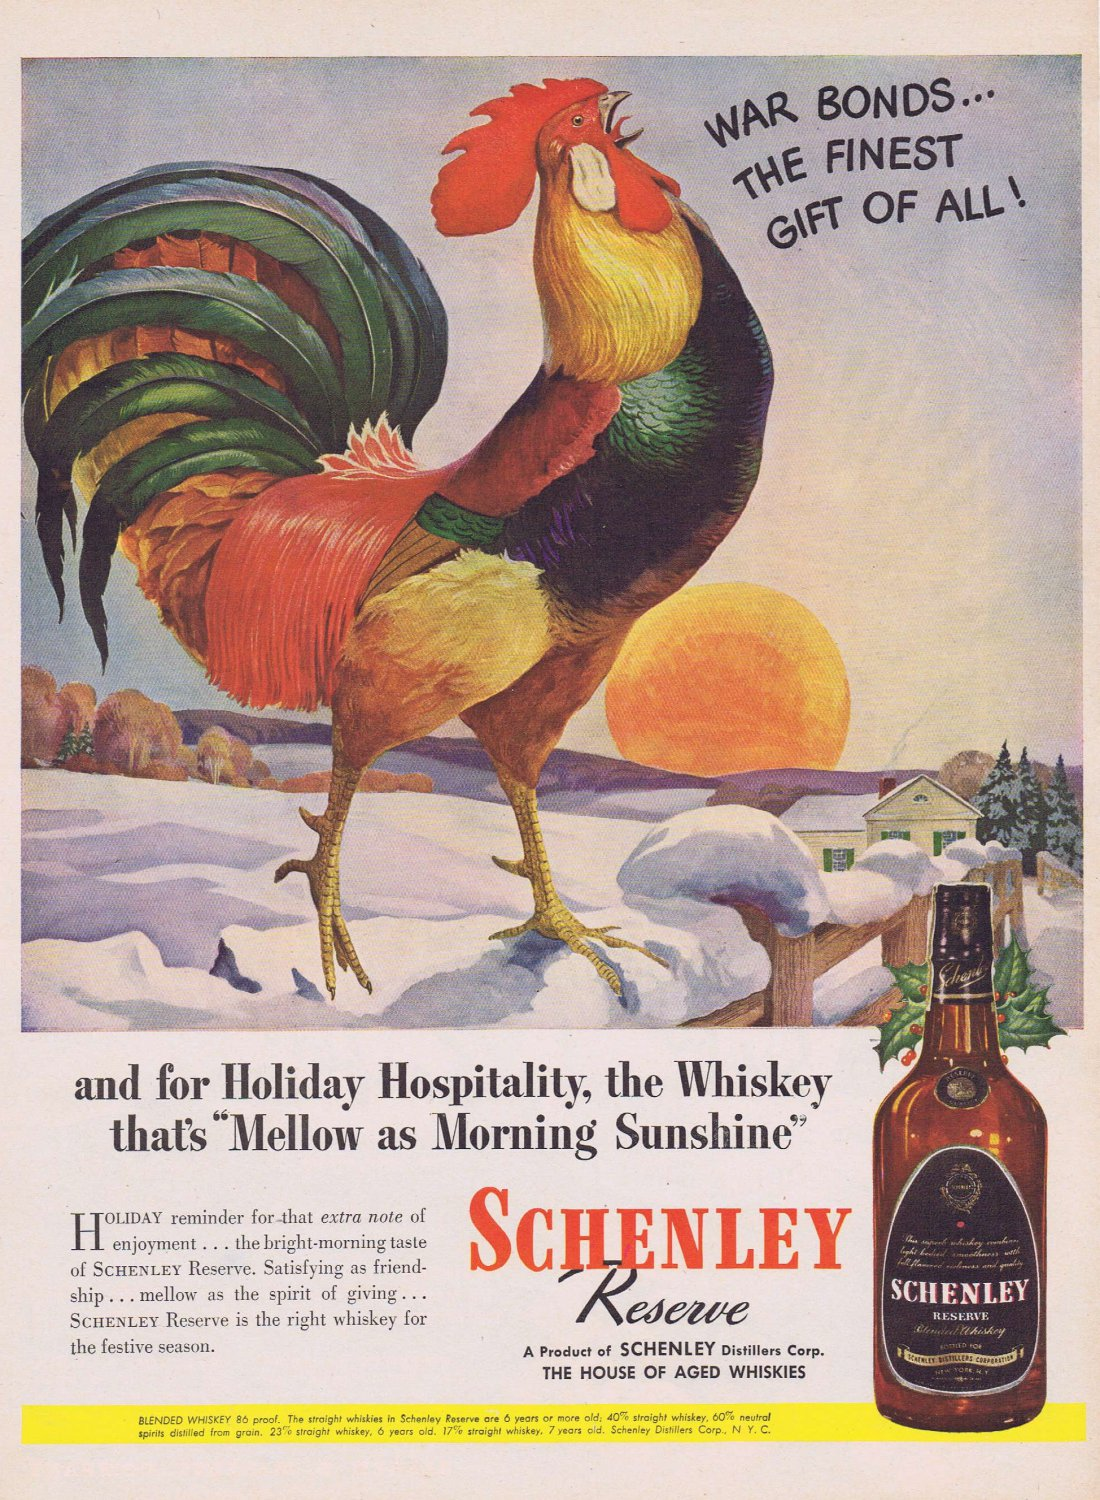 1949 Schenley Reserve Blended Whiskey Original Vintage Ad with Beautiful Crowing Rooster